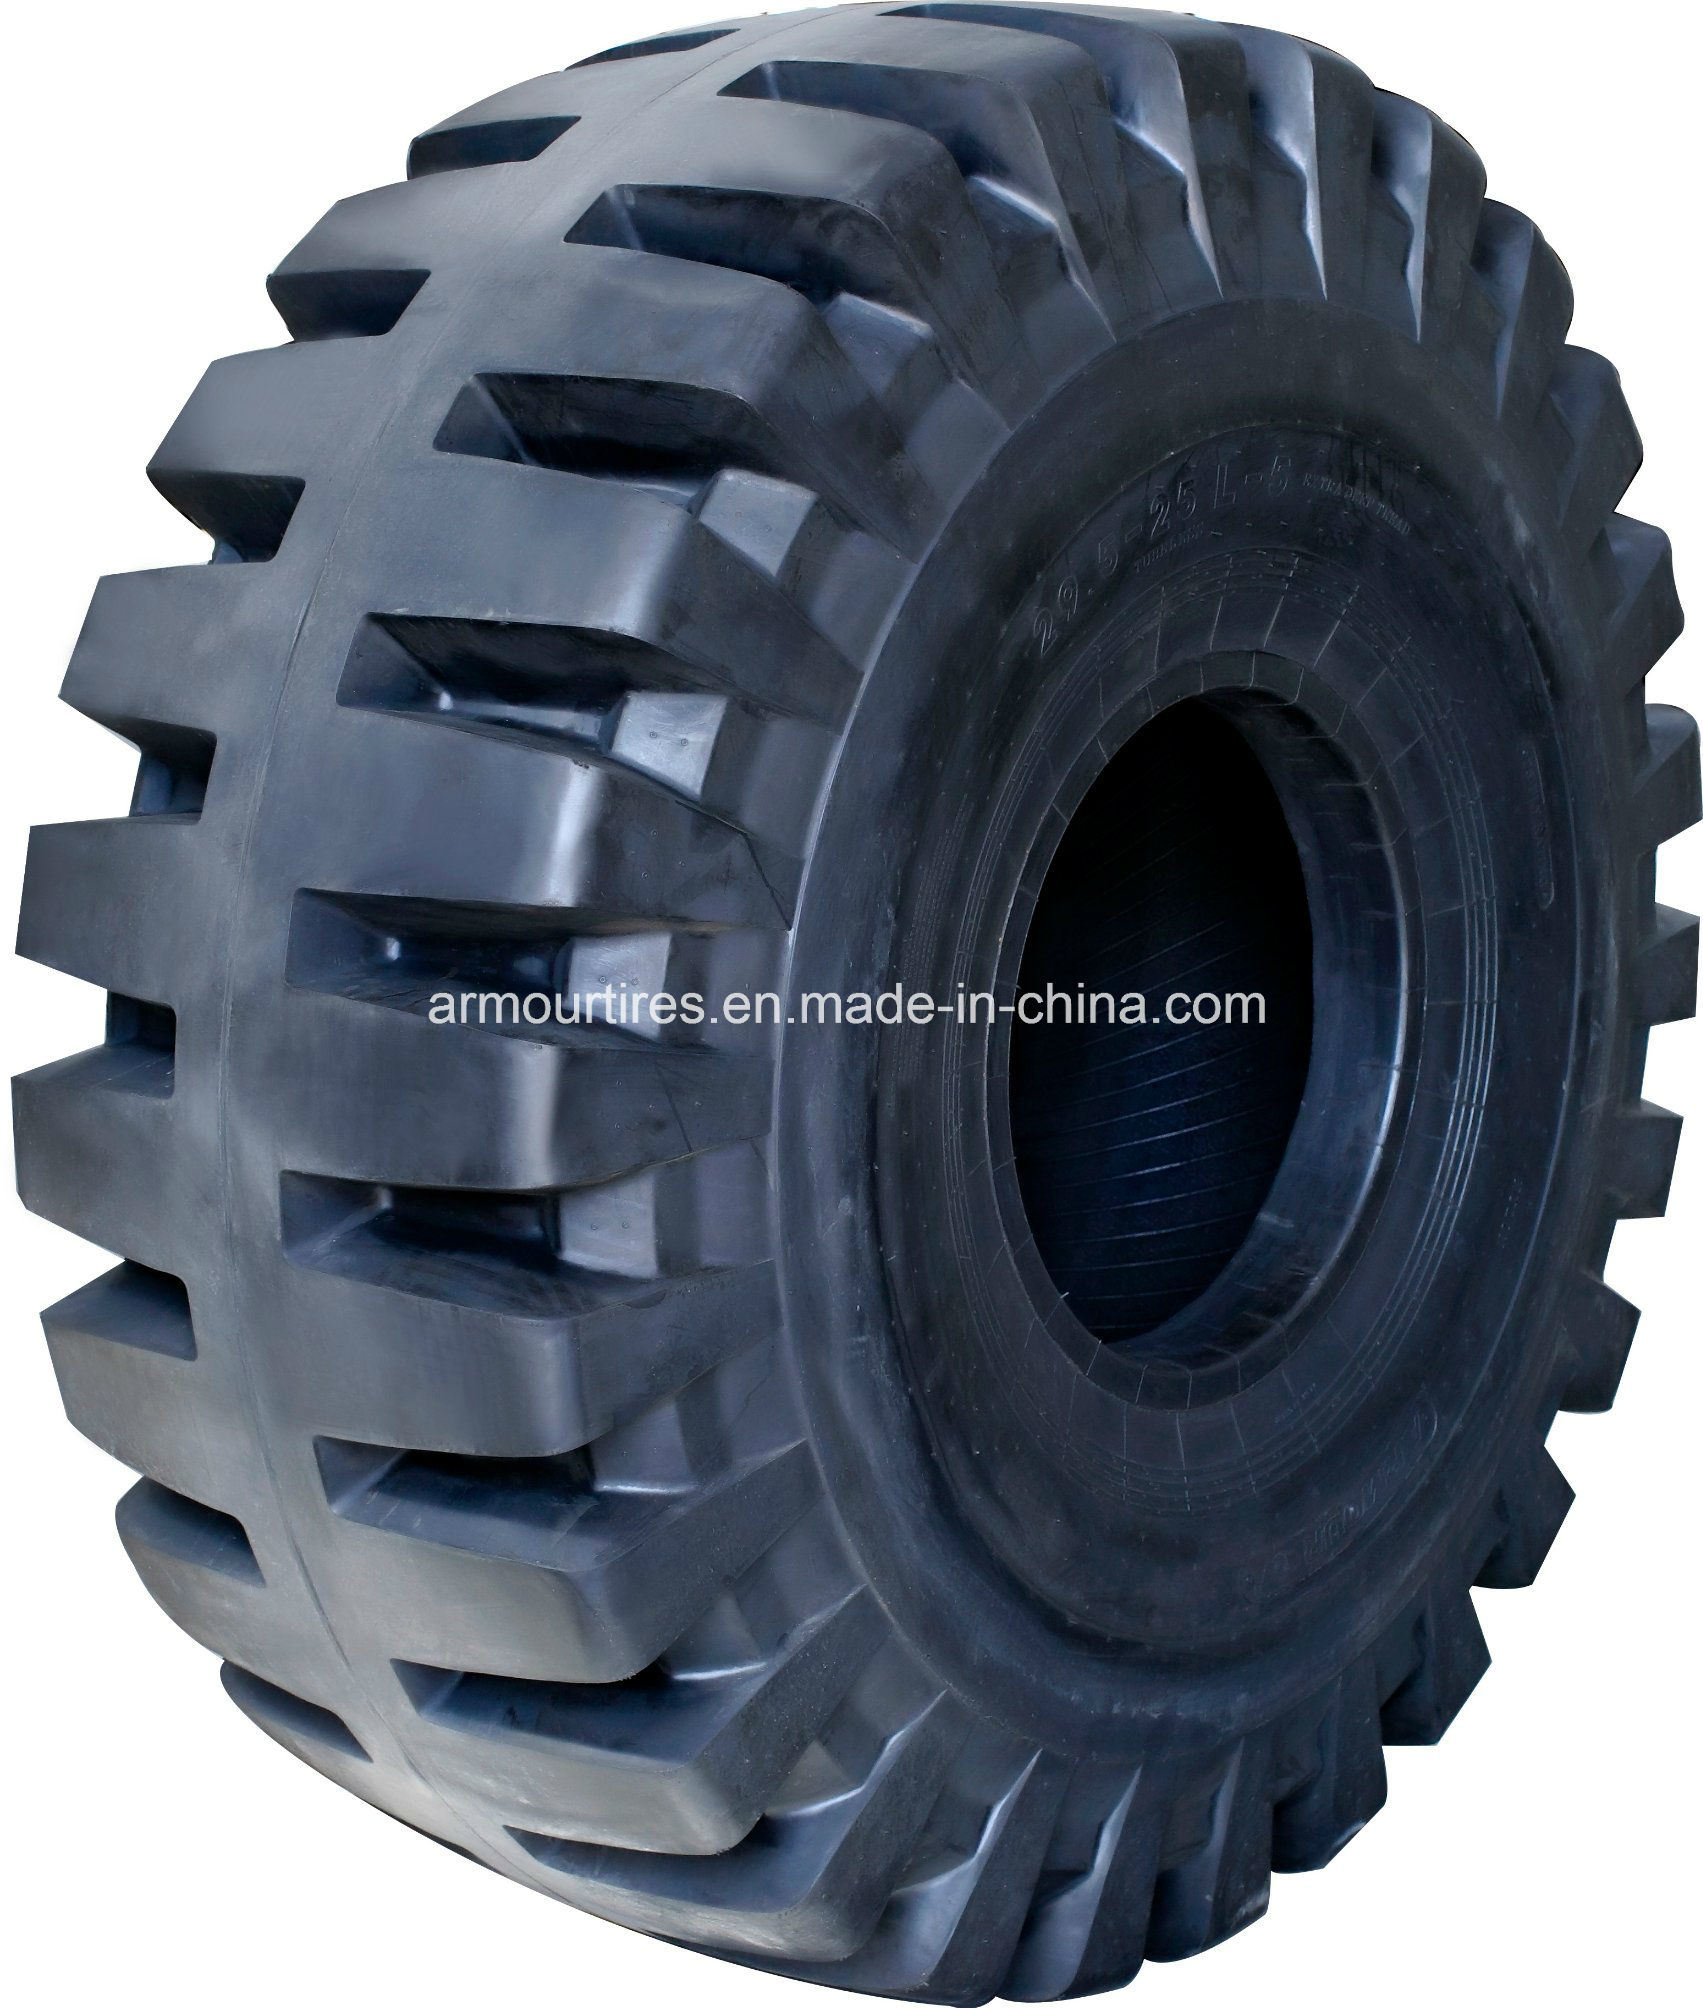 Amour 20.5-25 L5 OTR Tyre for Loade/Bulldozer